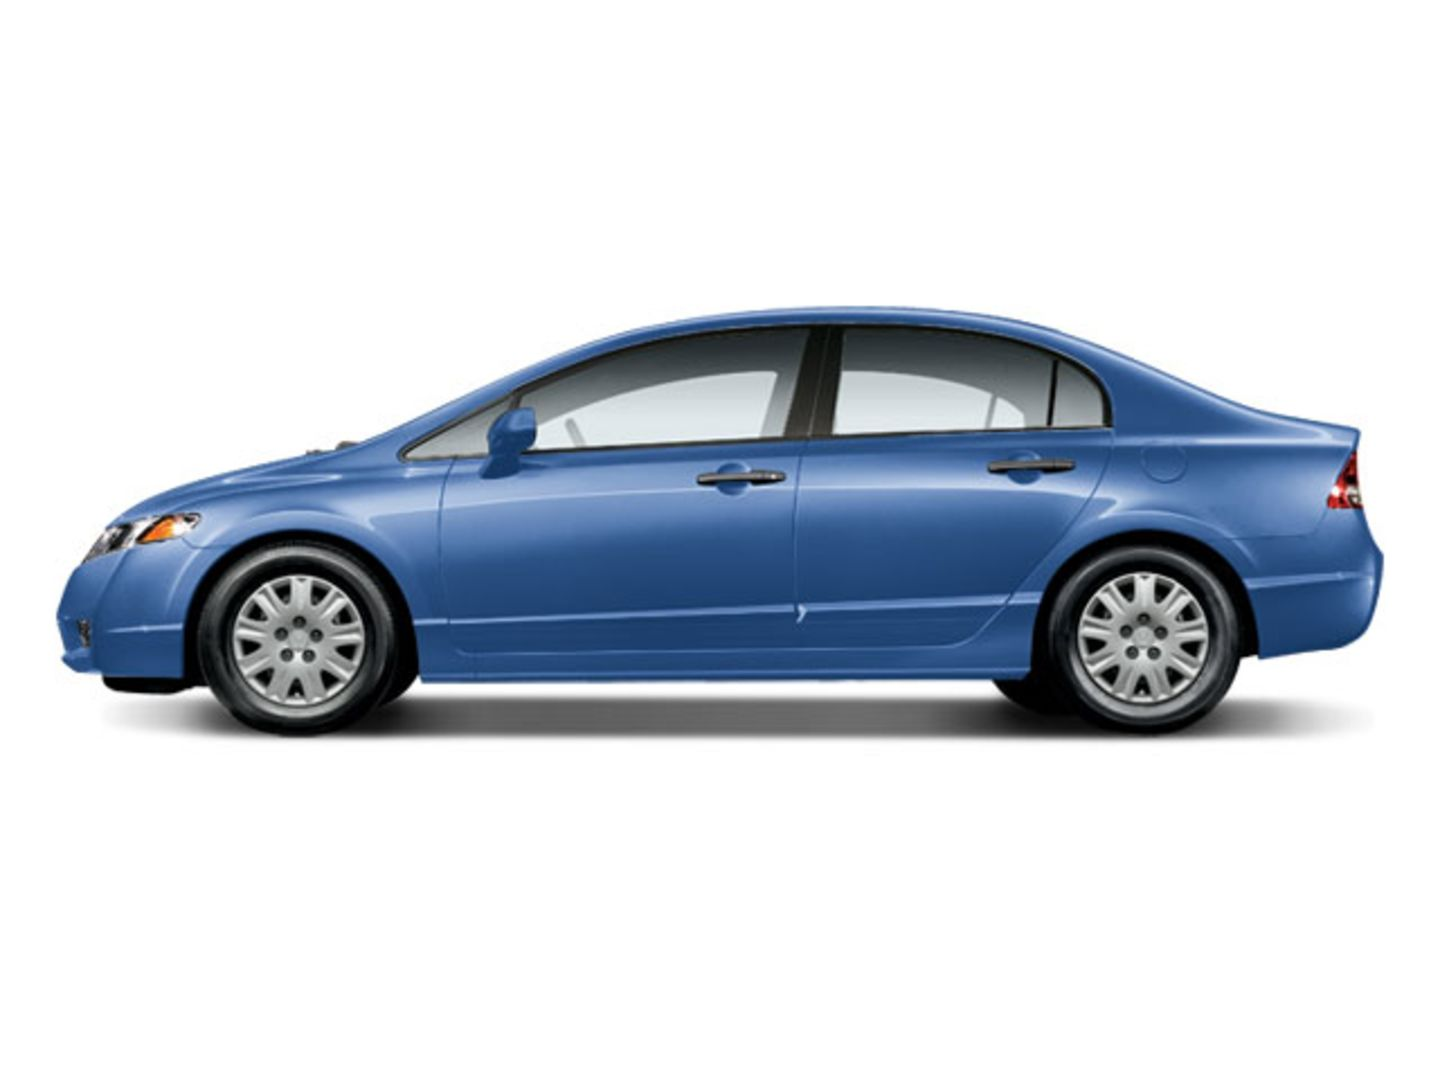 2009 Honda Civic Sdn DX for sale in Mississauga, Ontario